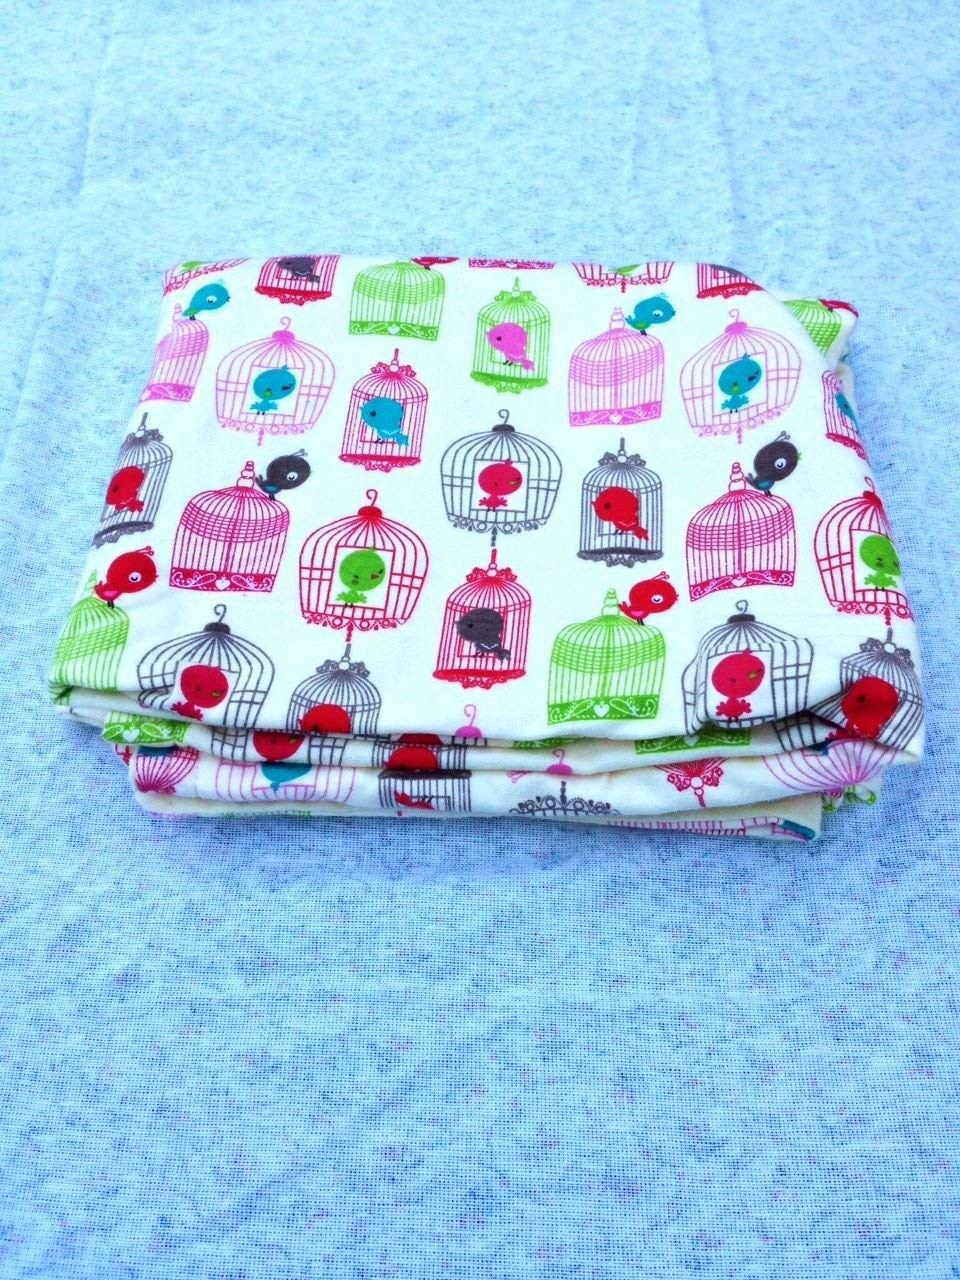 Bird Cages Baby Receving Swaddling Blanket Double Sided Oversized Handmade